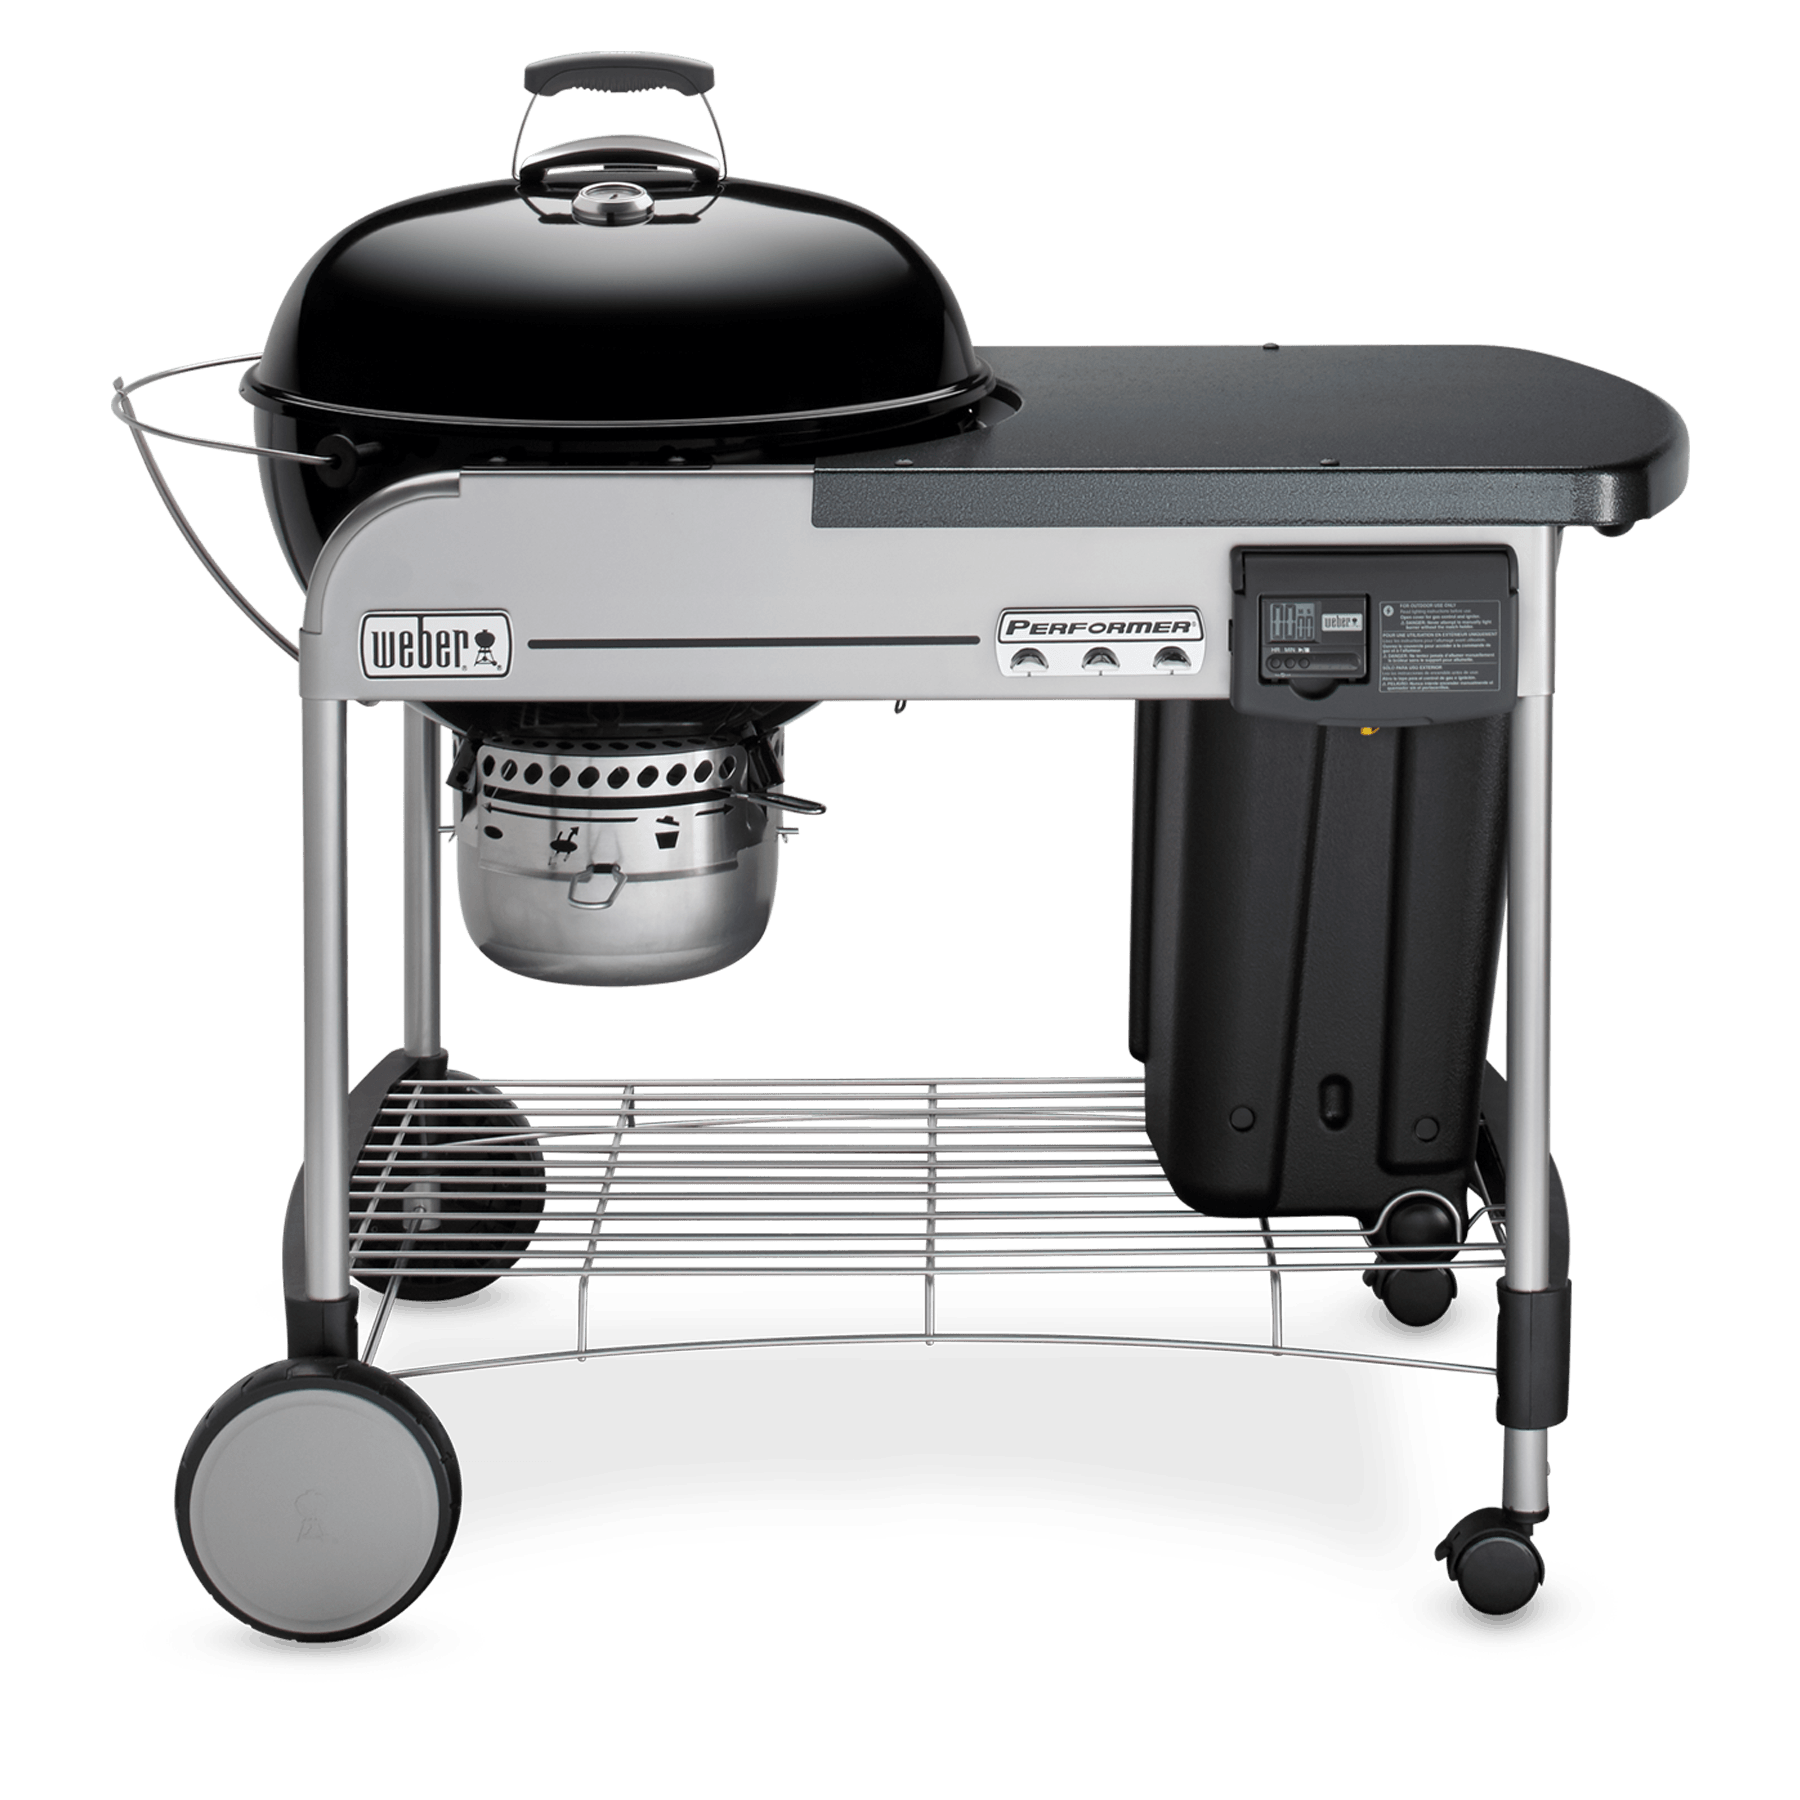 Charcoal Bbq Weber 22 Performer Deluxe Charcoal Grill Weber Grills